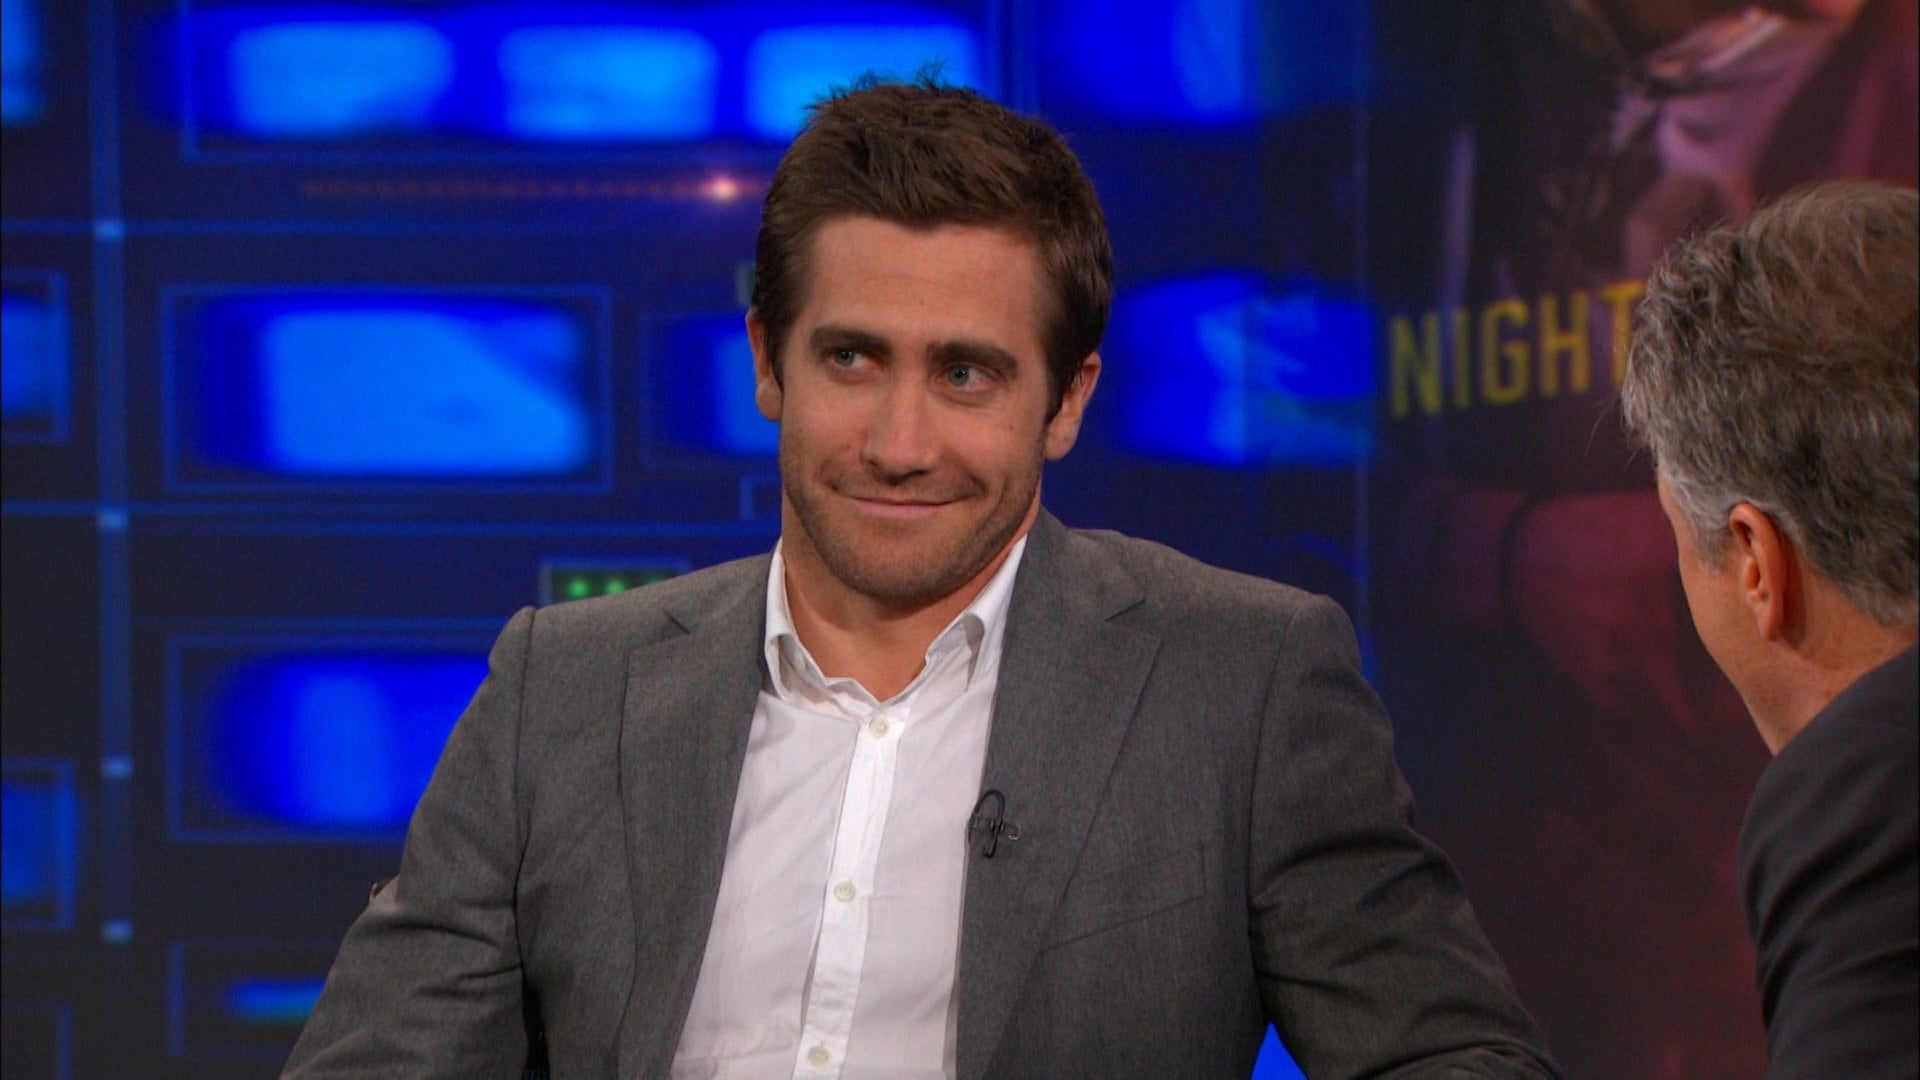 The Daily Show with Trevor Noah Season 20 :Episode 17  Jake Gyllenhaal